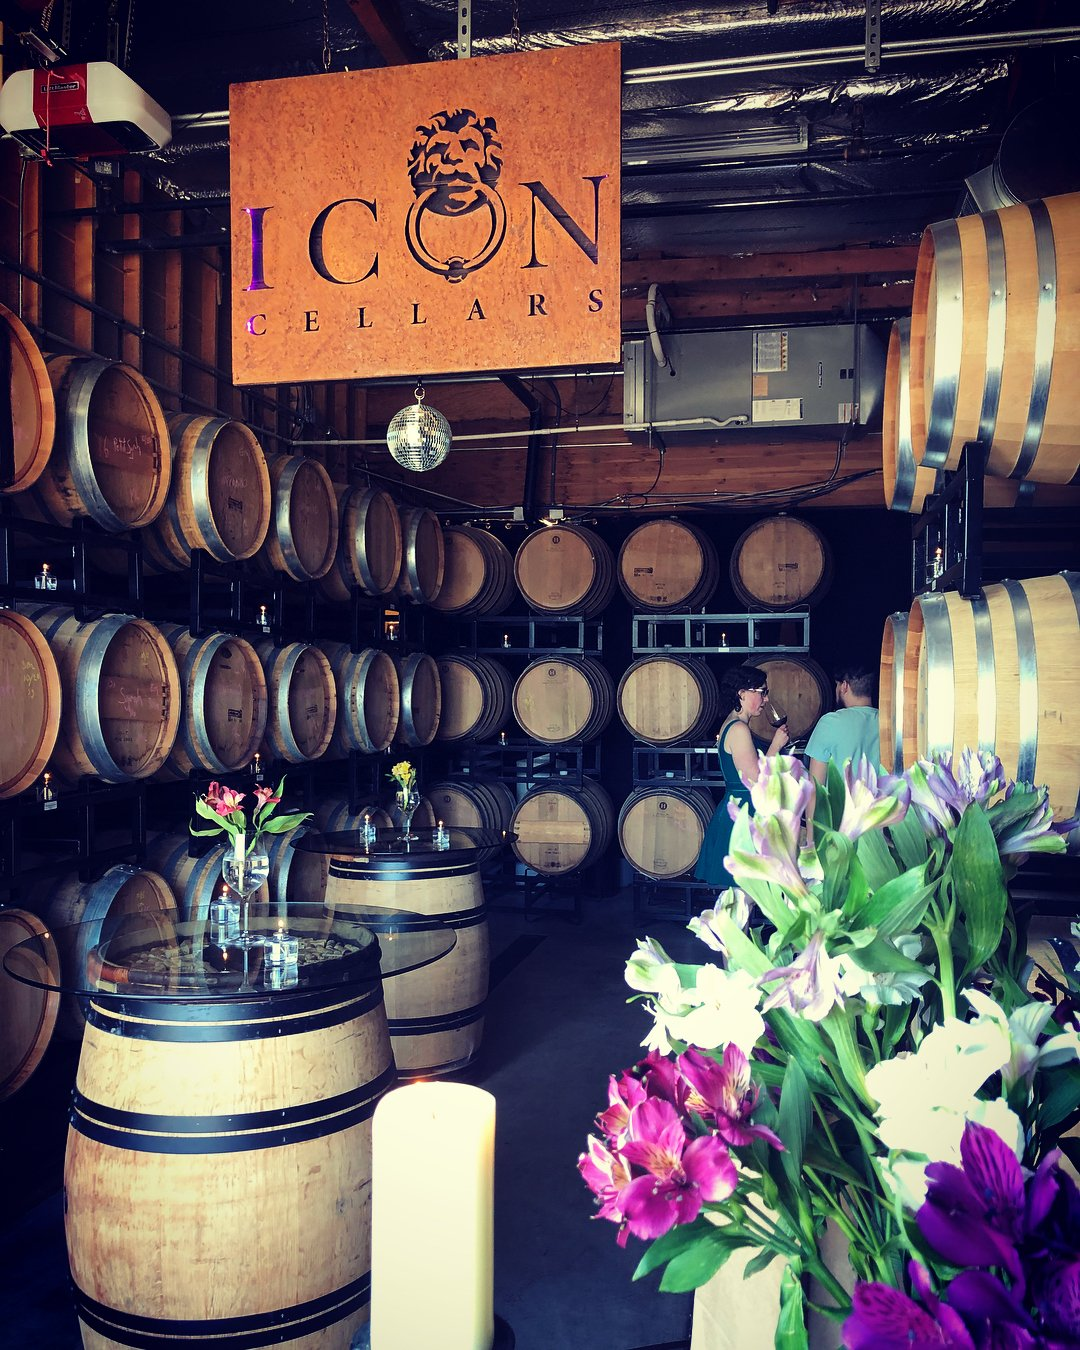 Tasting room filled with barrels of wine at Icon Cellars near Bothell, Washington.